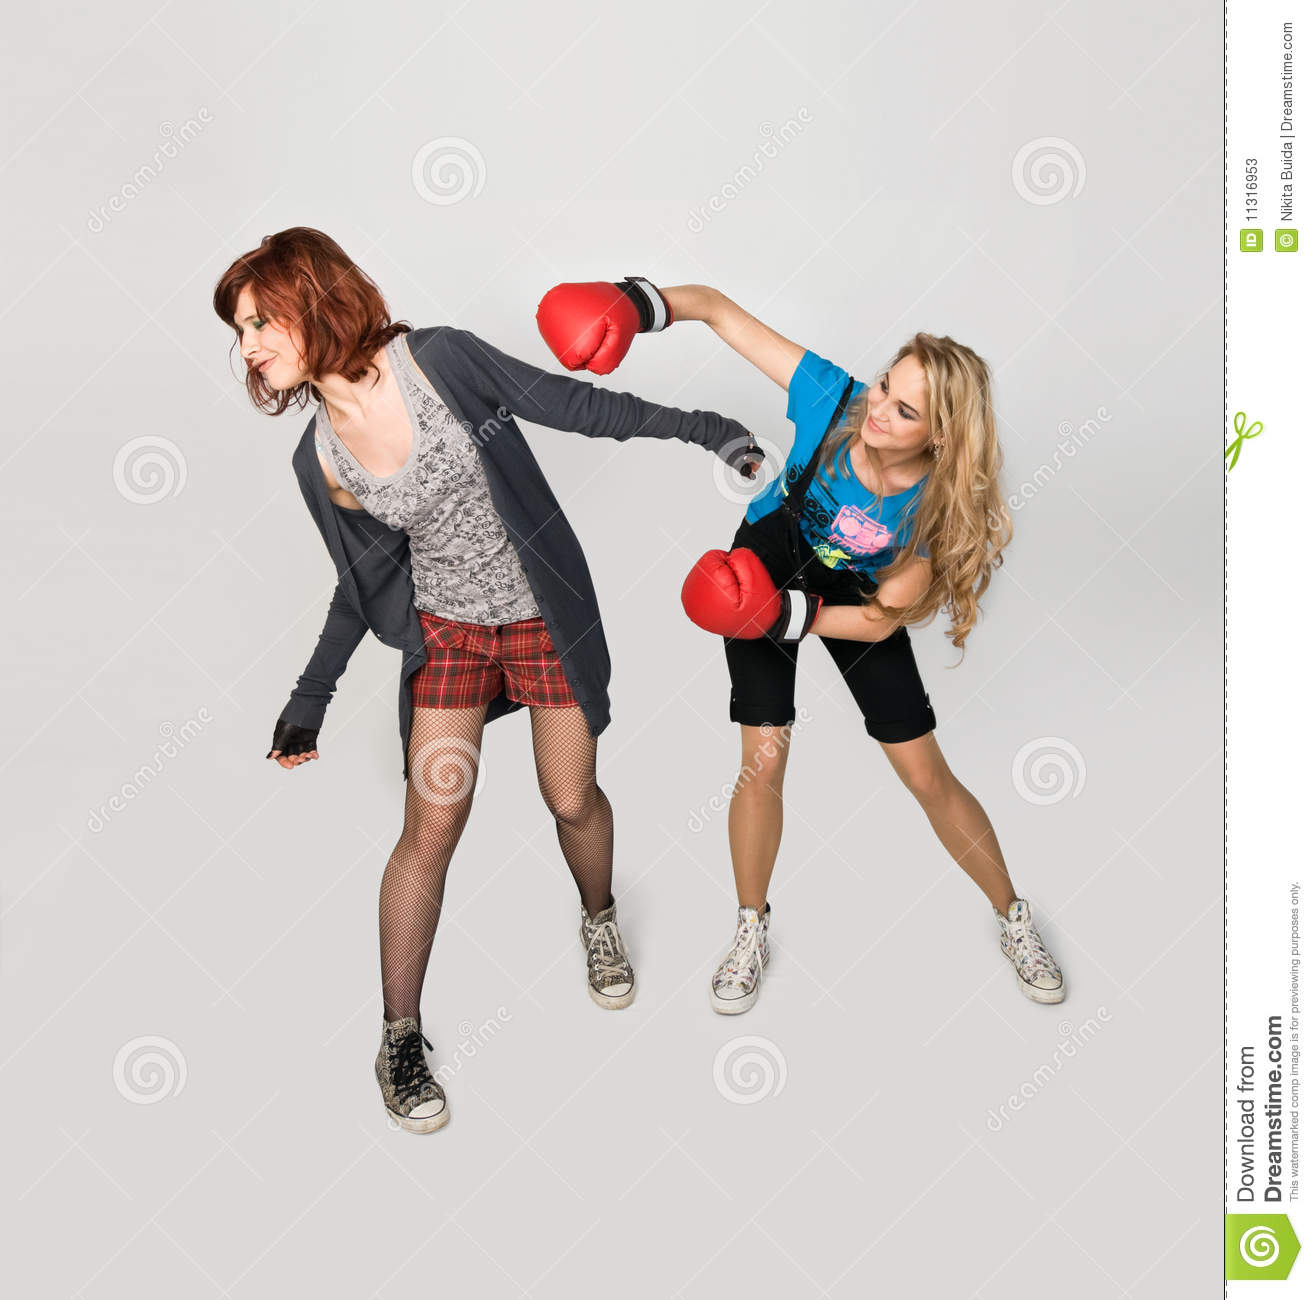 Woman pretty girls fighting weird